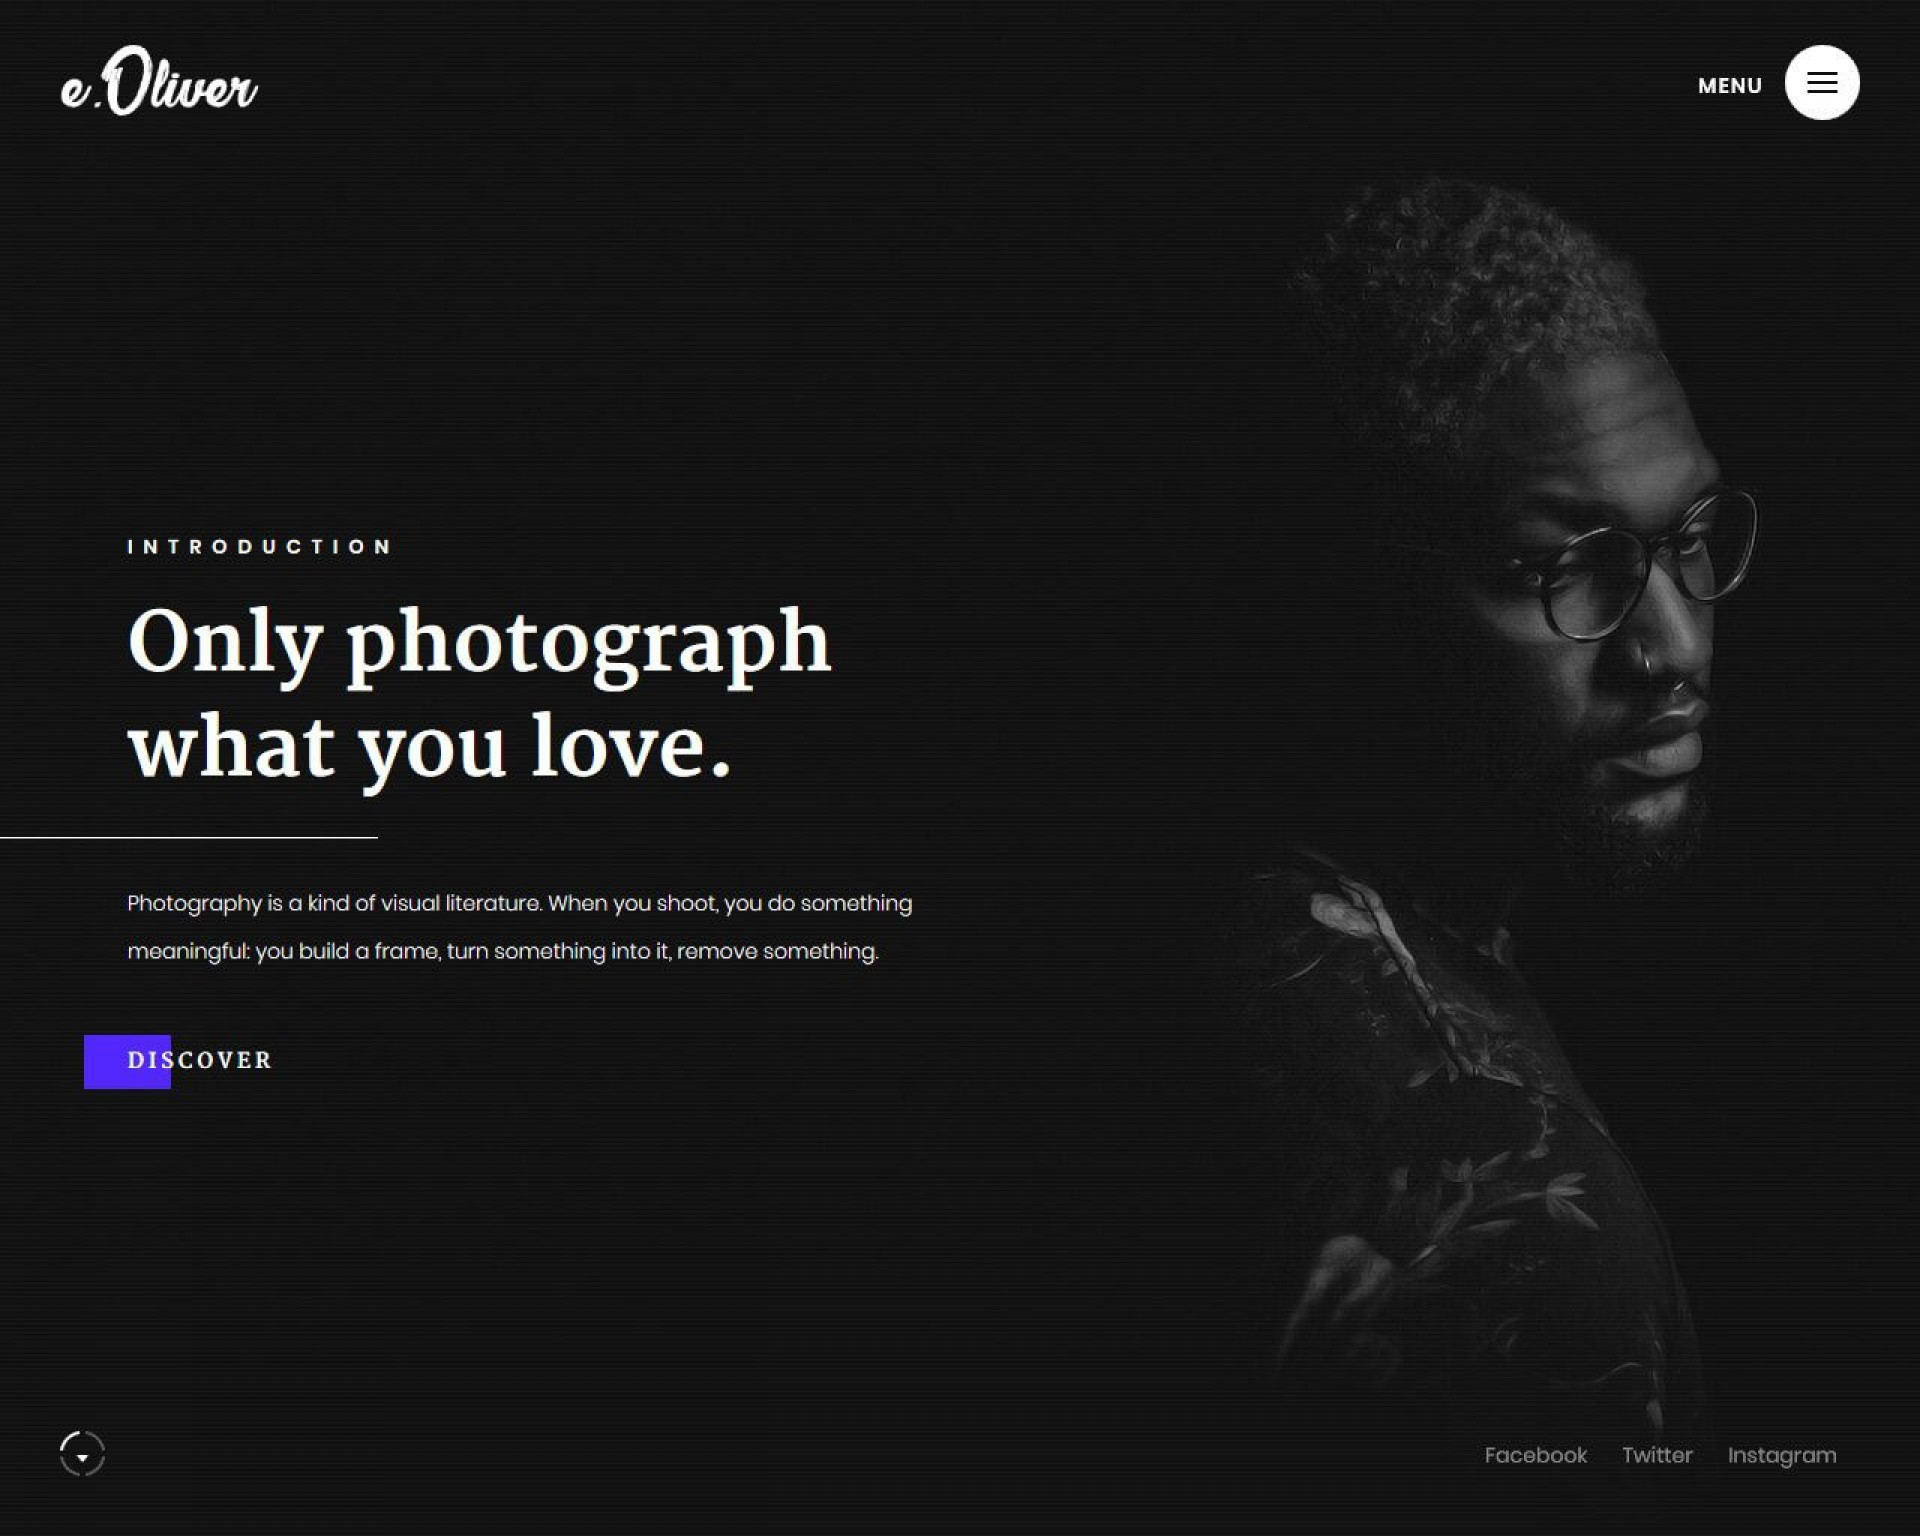 005 Fascinating Web Template For Photographer Image  Photography1920